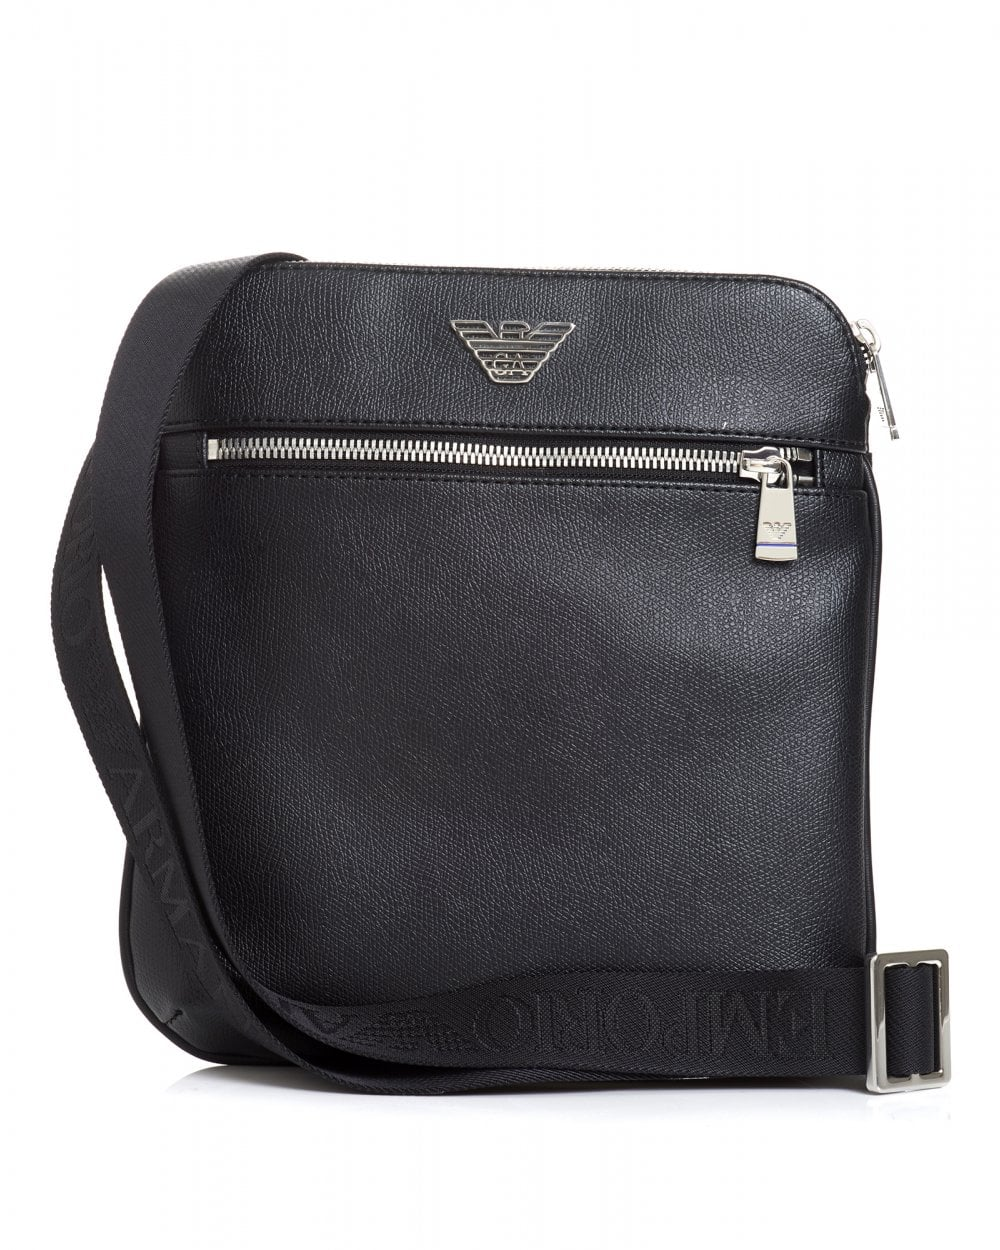 4bfa7c3e8524 Emporio Armani Mens Silver Eagle Logo Black Crossbody Stash Bag